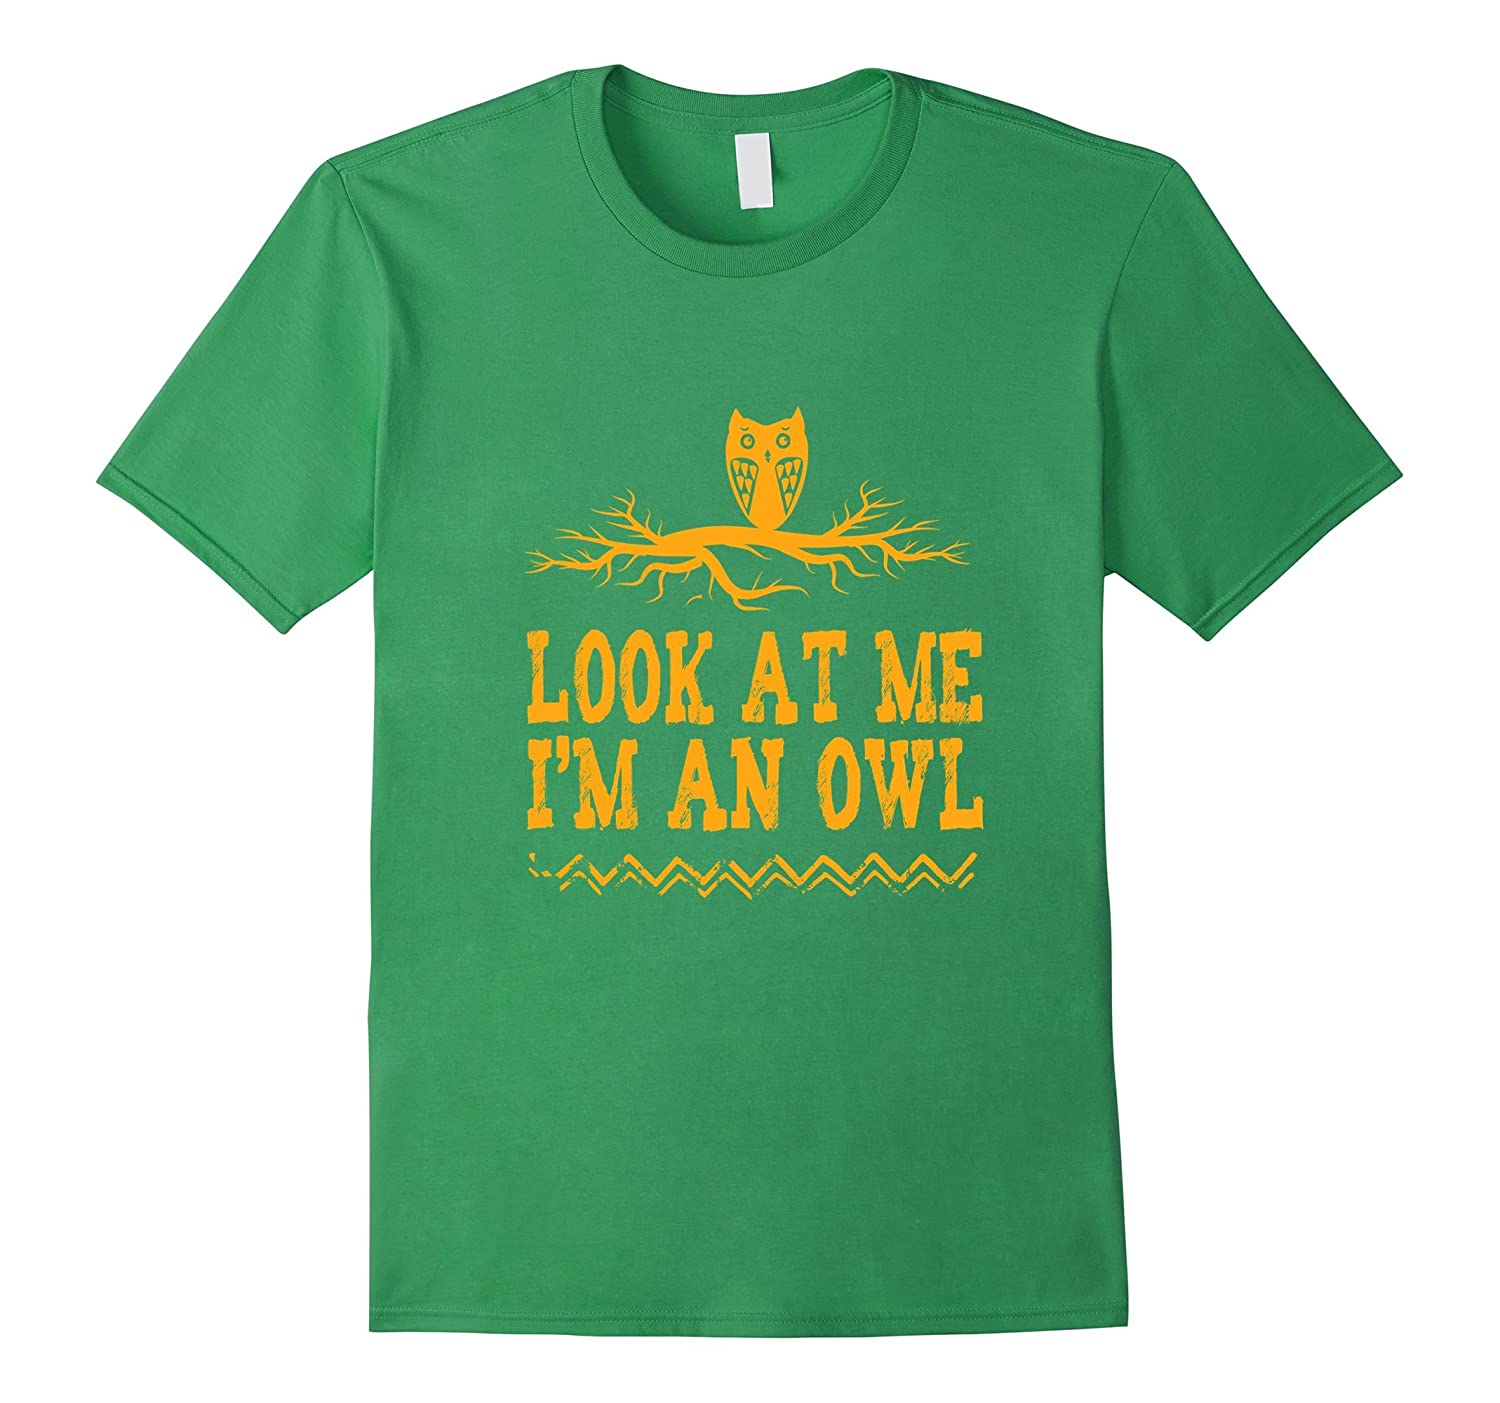 Funny Look At Me I'm An Owl T-shirt Halloween Costume Animal-FL